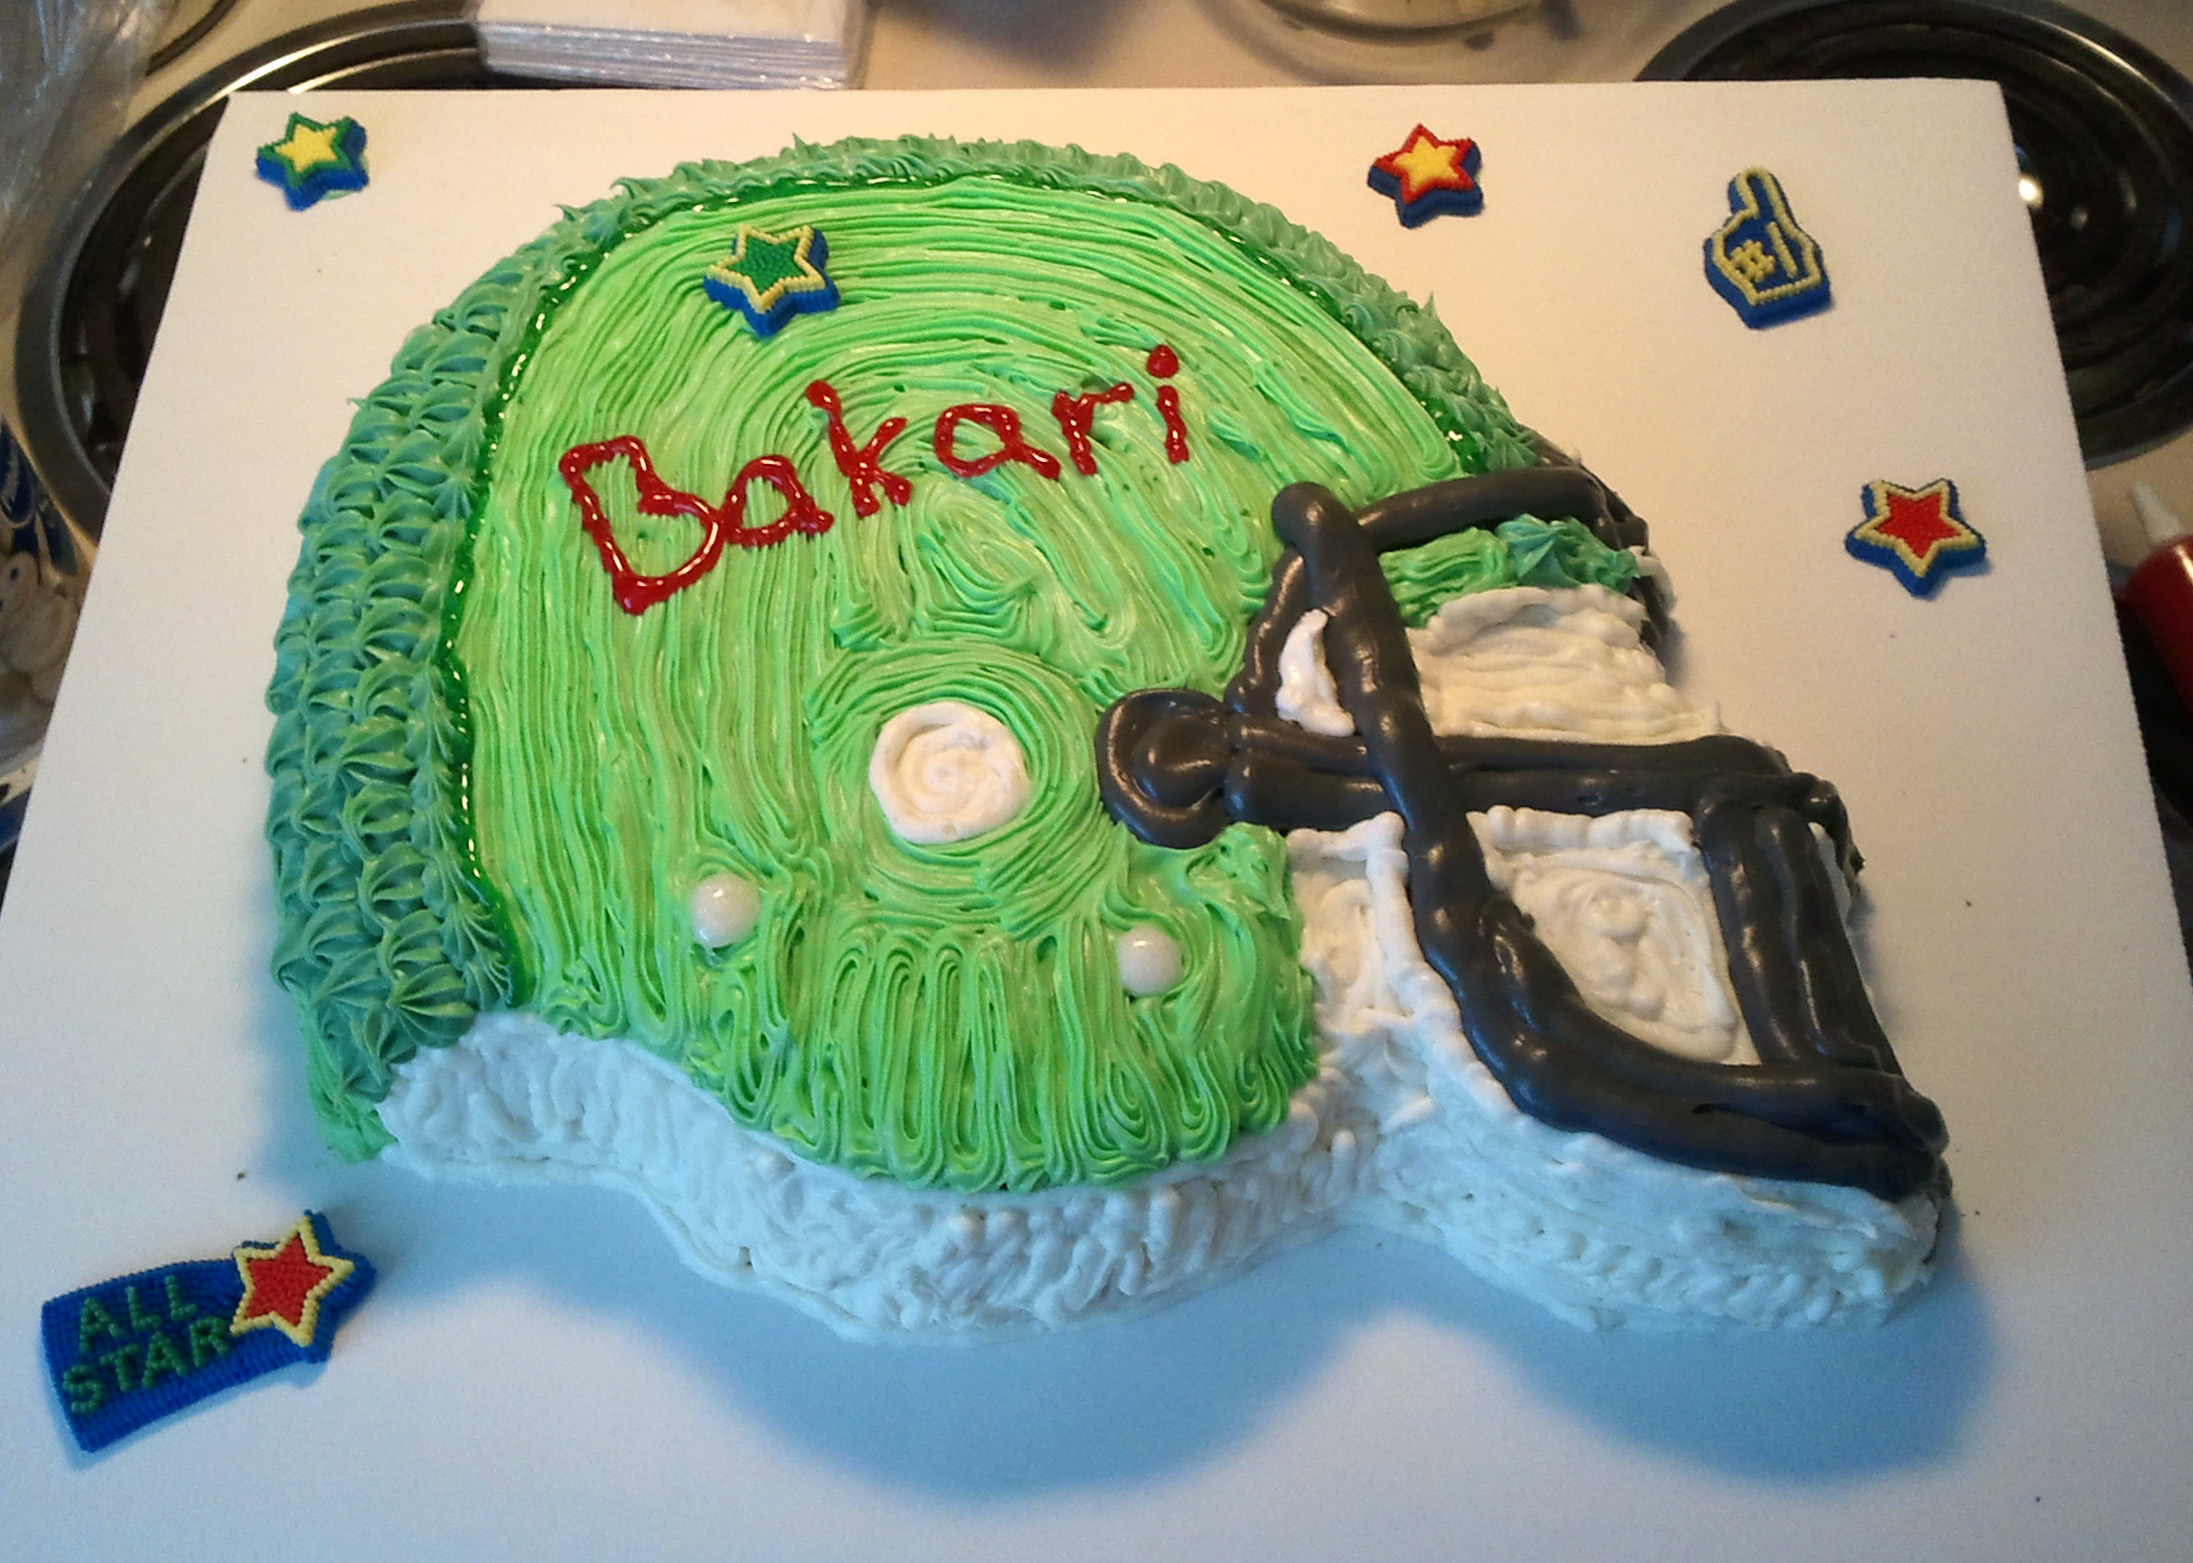 Nonprofits Cakes Help Kids In Need The Spokesman Review